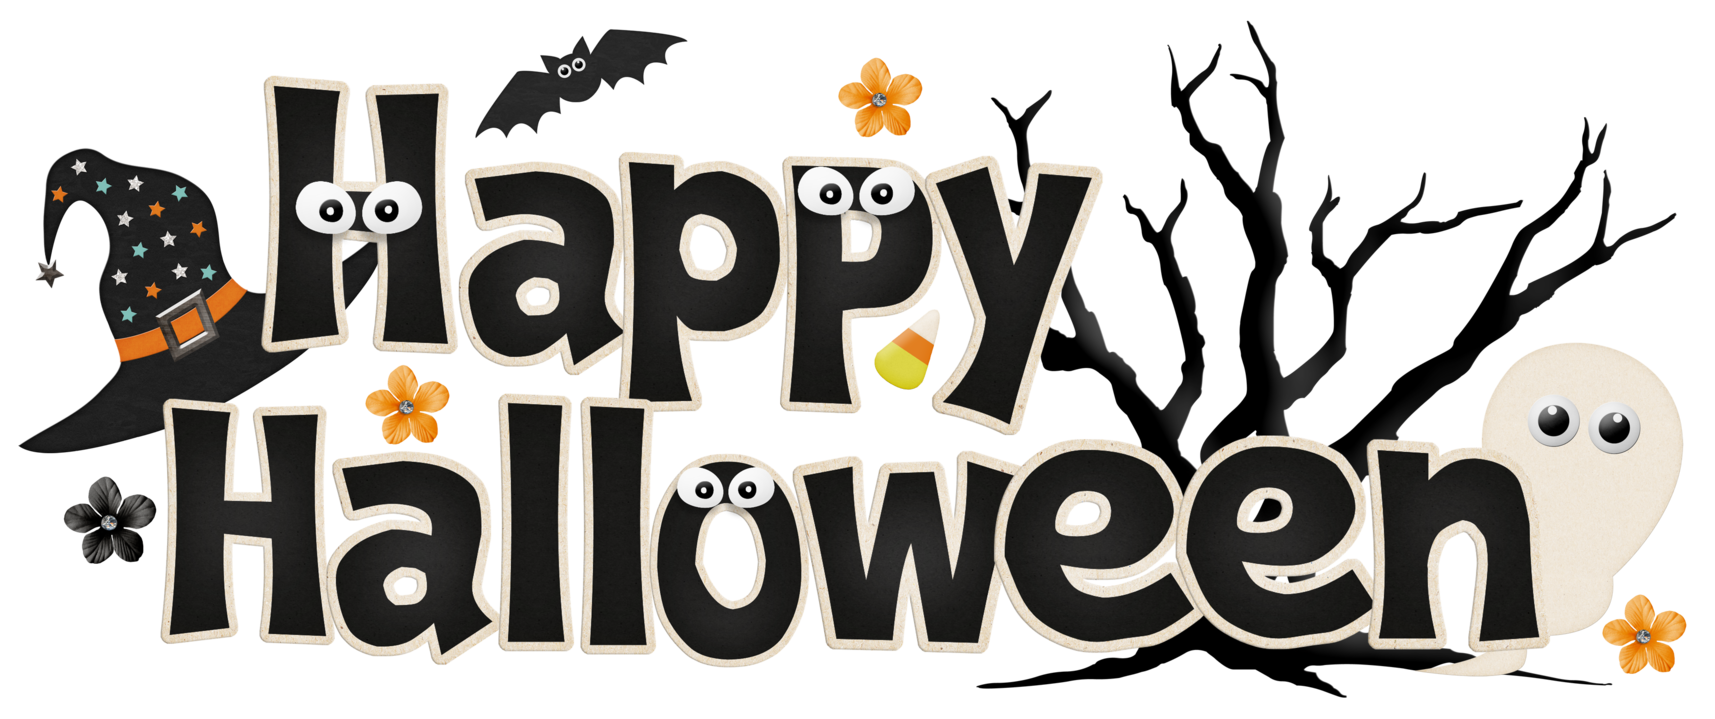 Halloween graveyard clipart free banner black and white download Month of october clipart free clipart images clipartwiz 2 clipartix ... banner black and white download